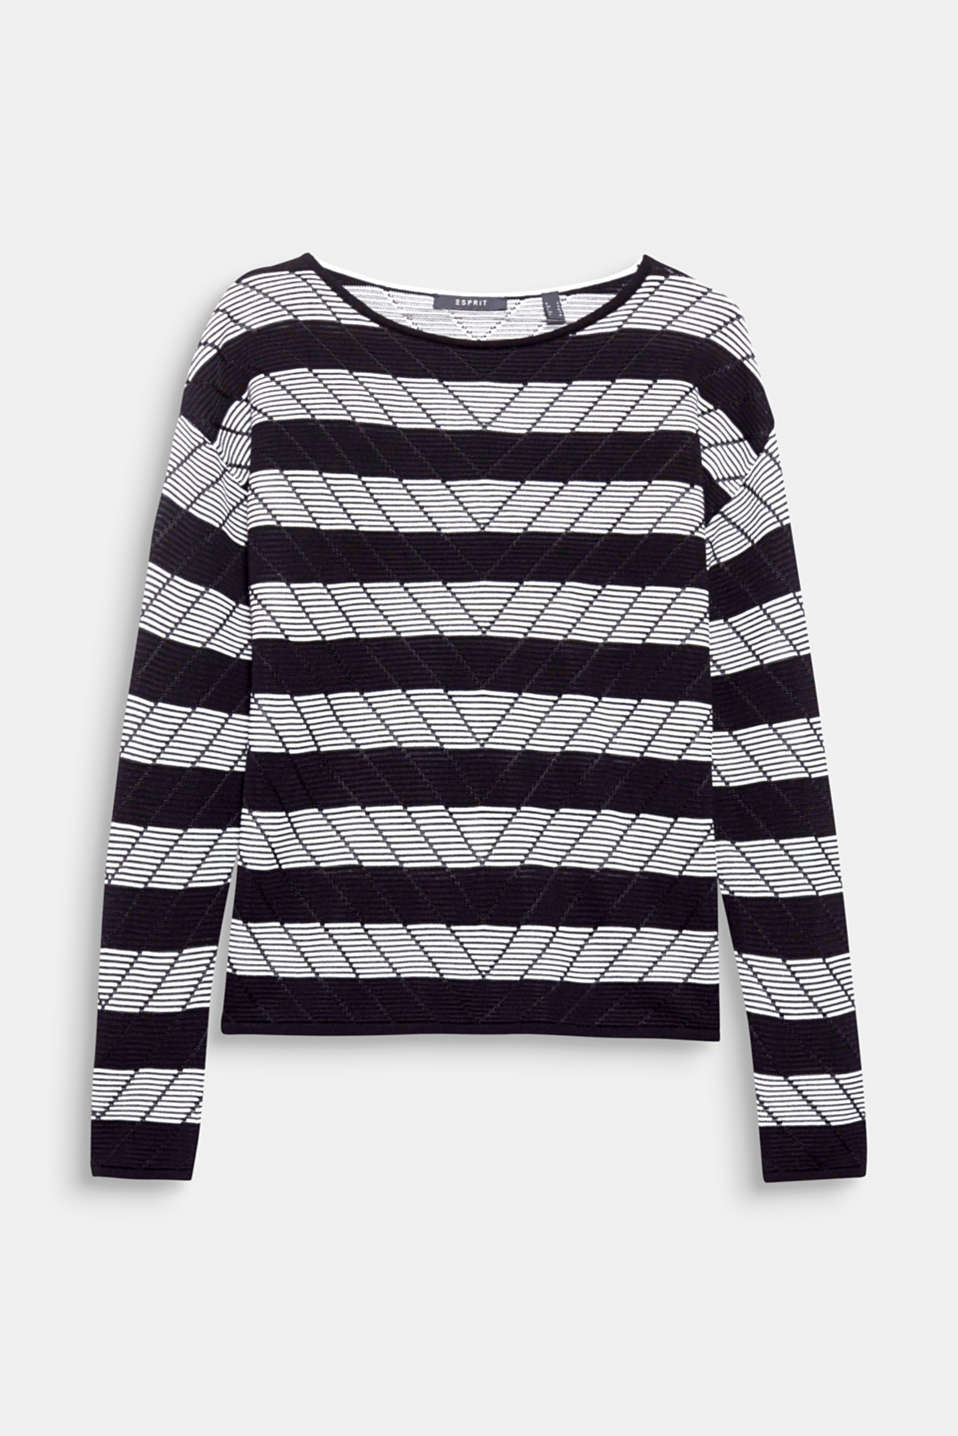 A lot going on here: block stripes, diagonal stripes and the semi sheer look make this jumper oh so stylish!